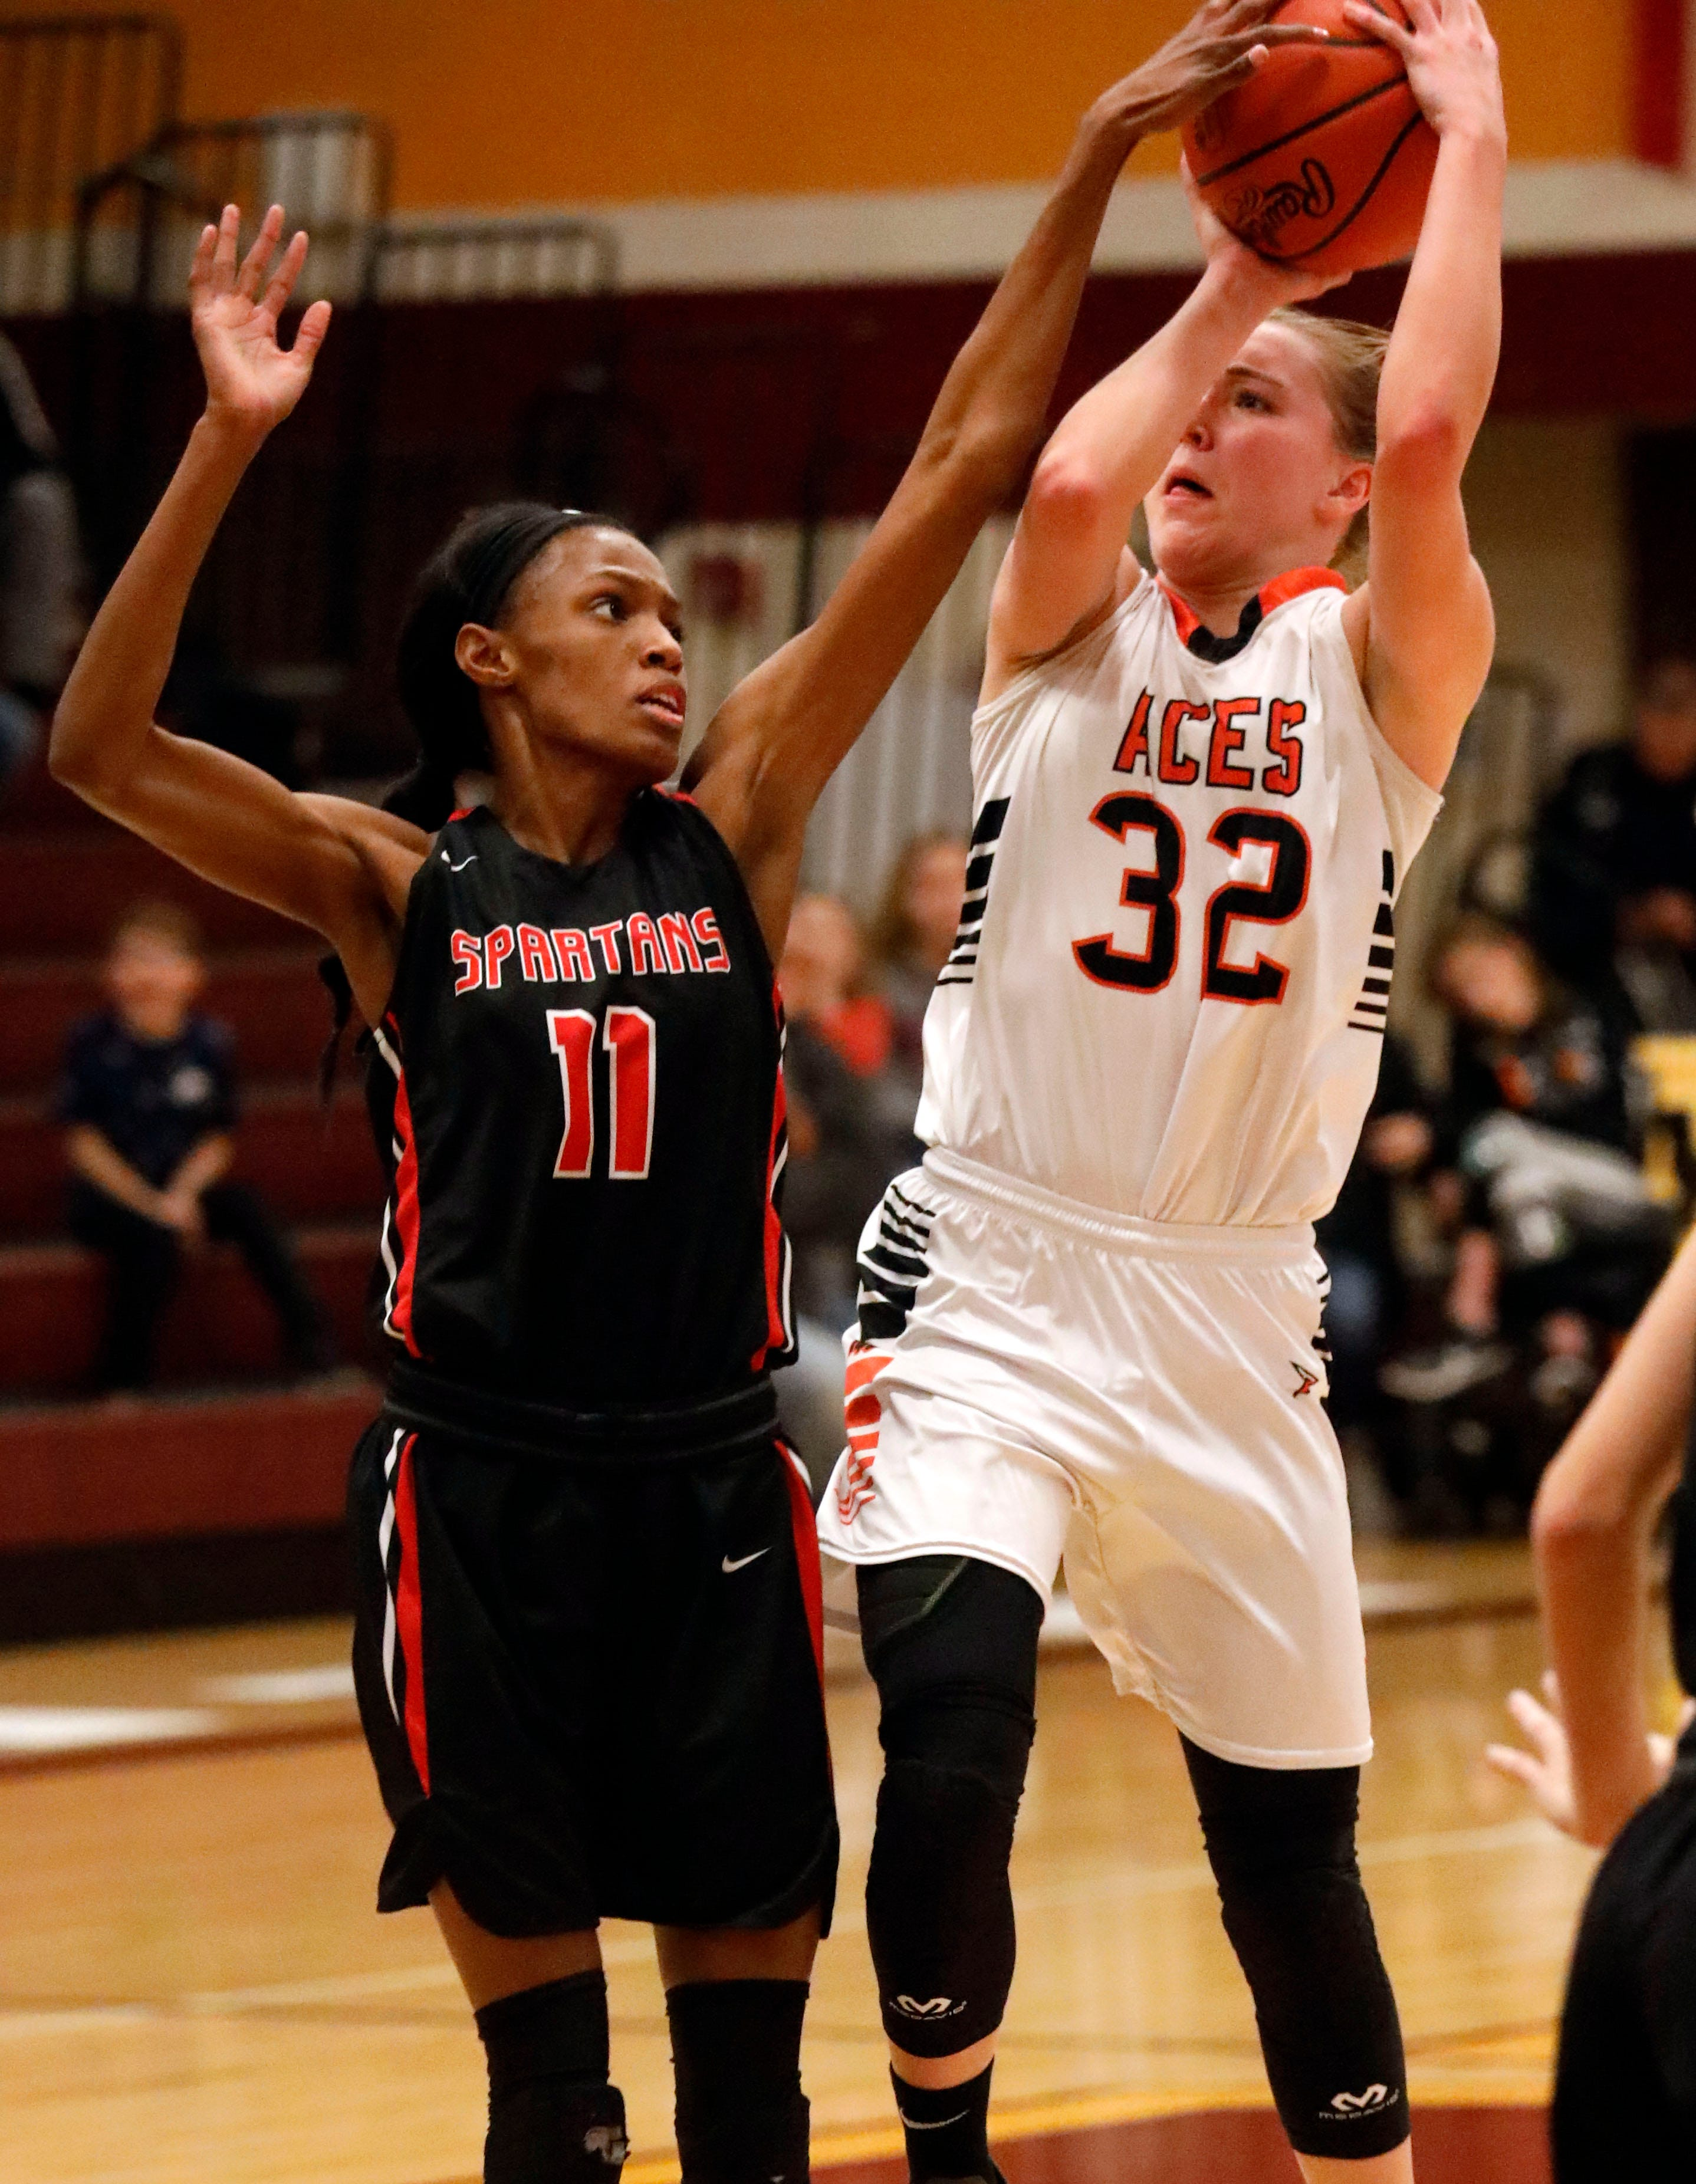 Amanda-Clearcreek's Alyssa Evans tries to shoot over Pleasant's Bekka Twine during Tuesday night's game, Feb. 26, 2019, at Westerville North High School in Westerville. The Aces won the game 41-37.